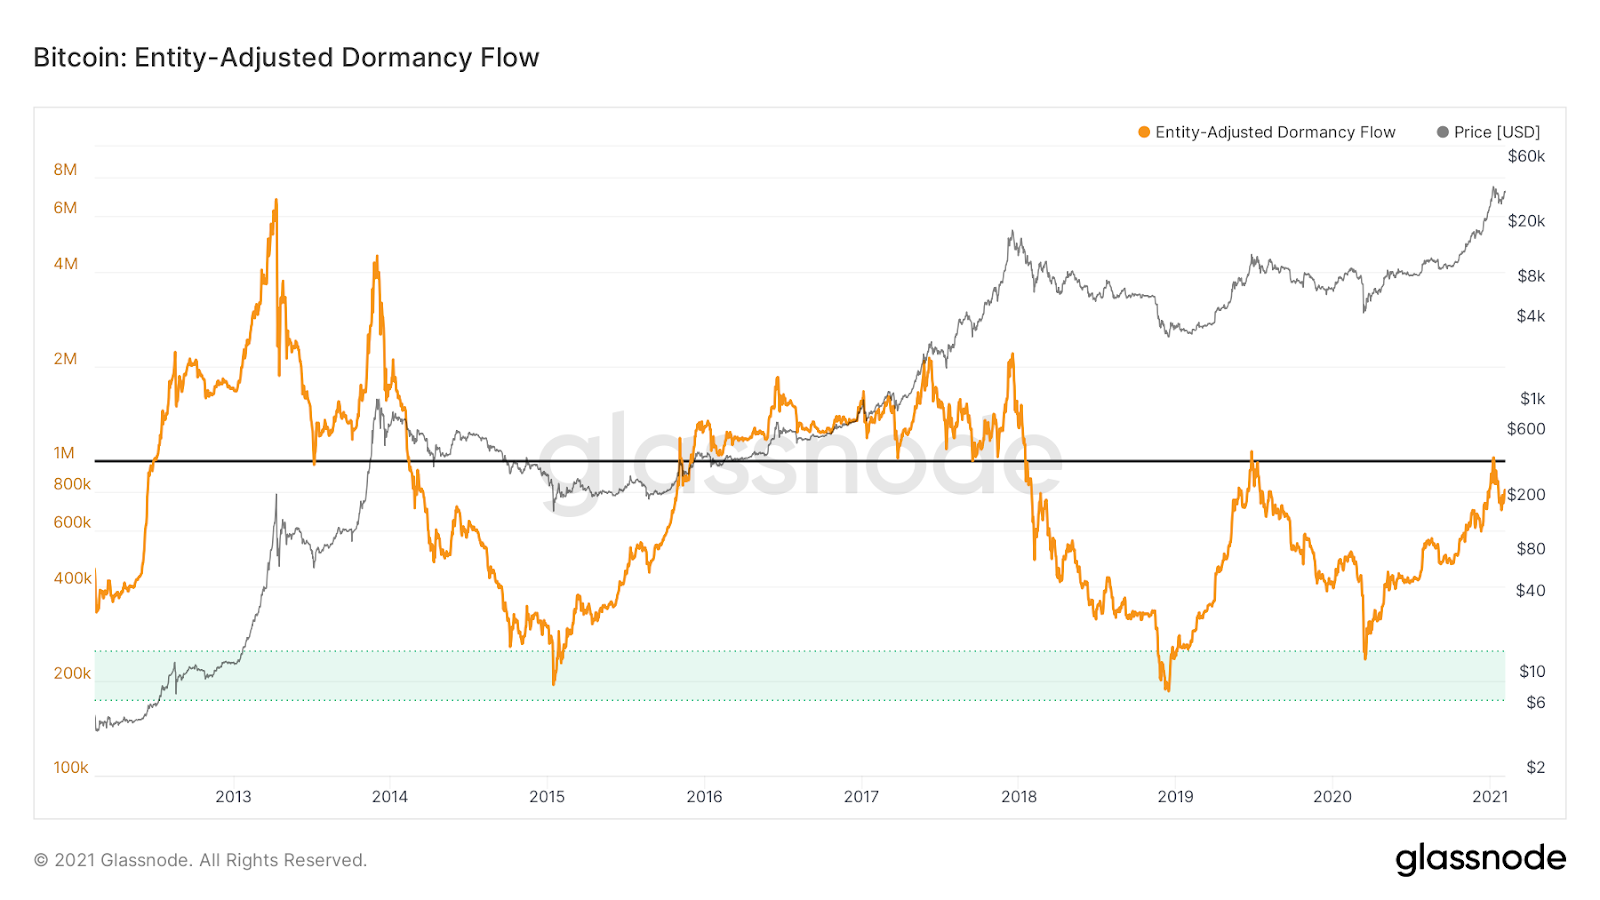 Bitcoin dormancy flow. Source: Glassnode